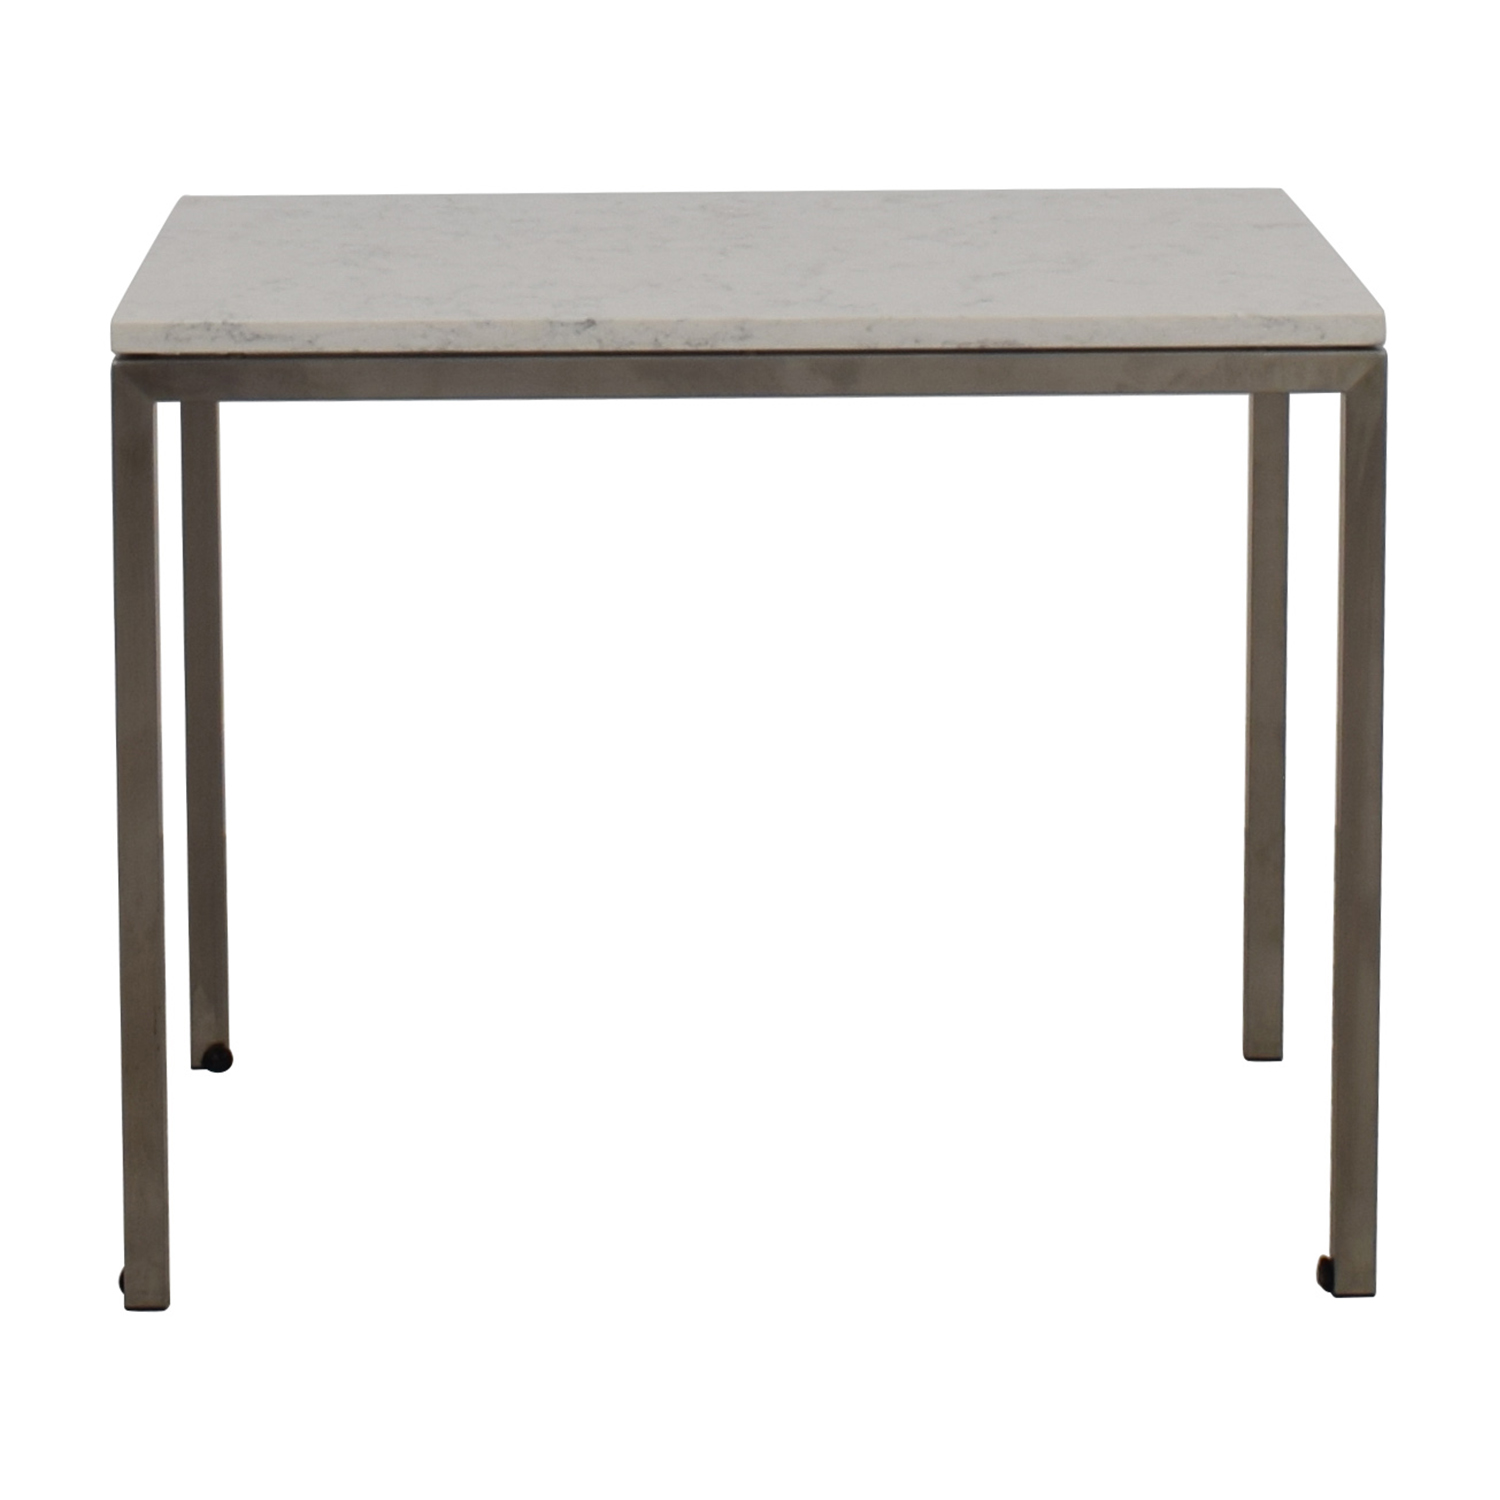 Room & Board Room & Board Portica Table with White Marbled Quartz Composite Top second hand